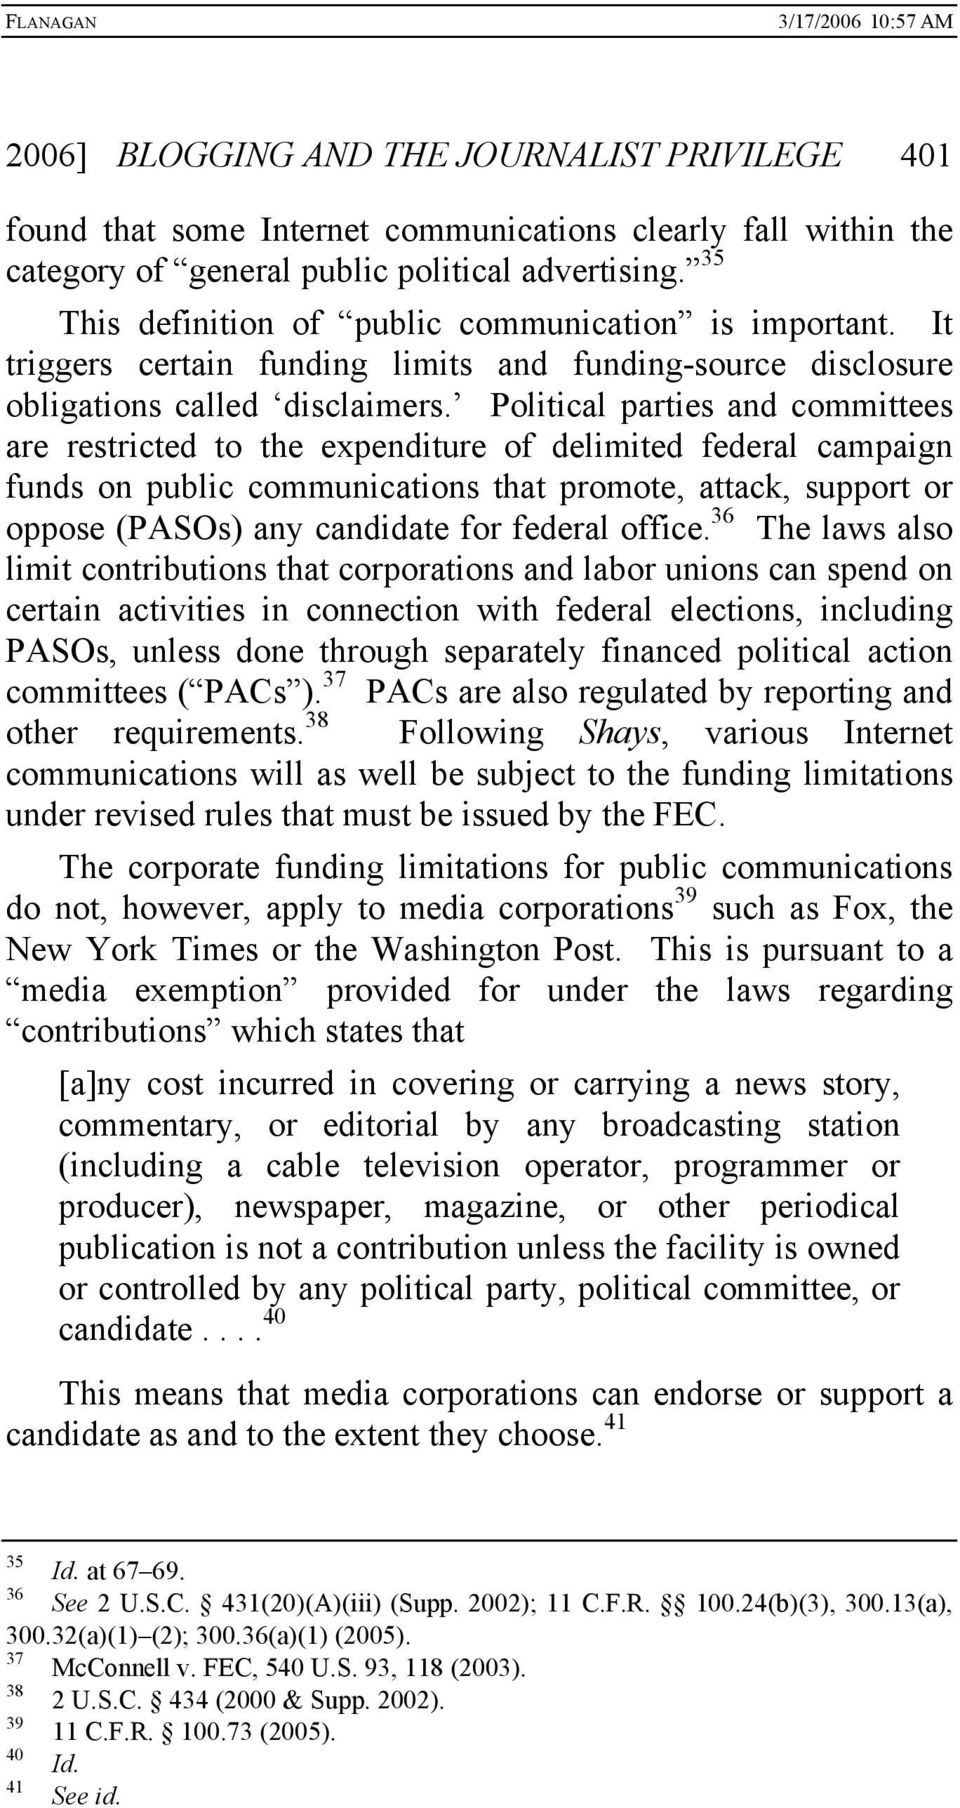 Political parties and committees are restricted to the expenditure of delimited federal campaign funds on public communications that promote, attack, support or oppose (PASOs) any candidate for